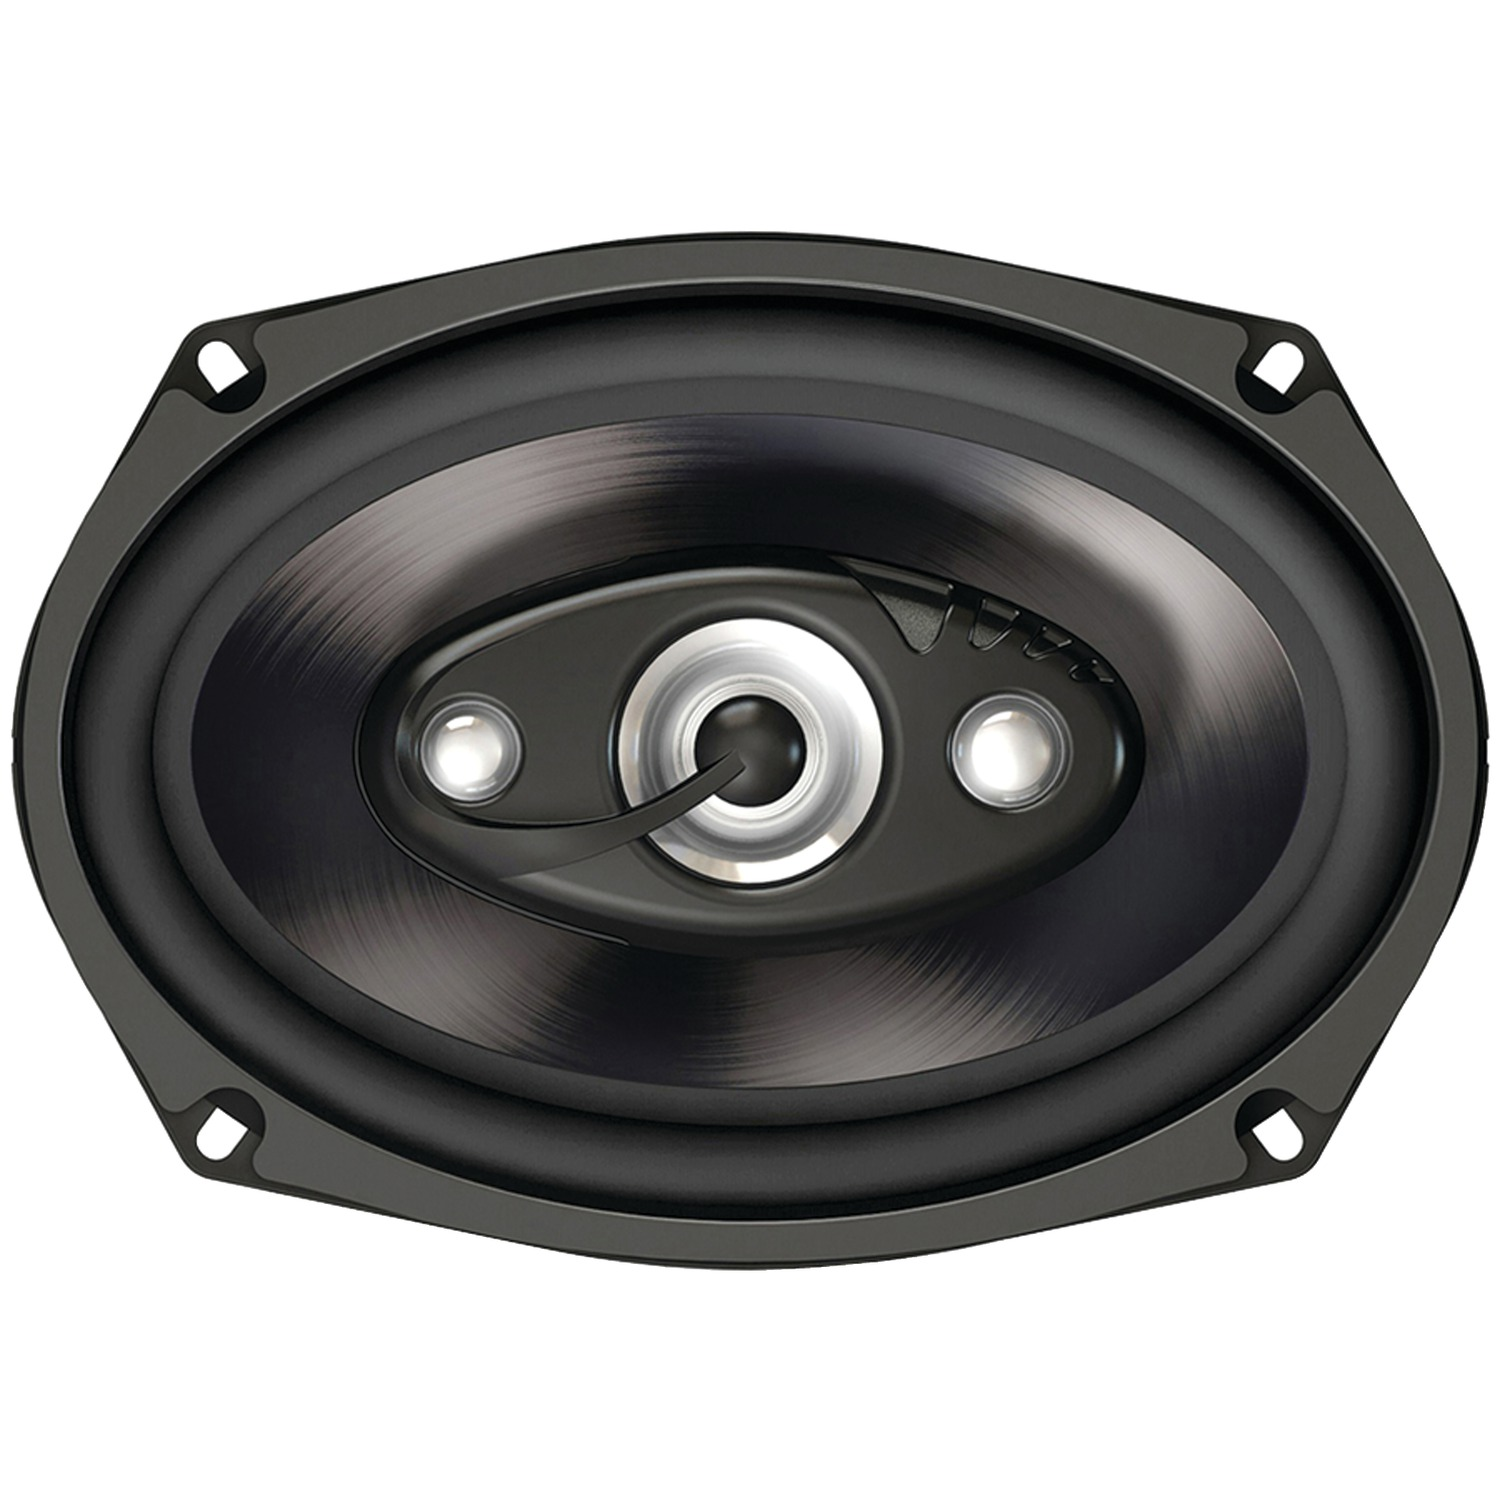 DUAL DLS694 DLS Series 4-Way Full-Range Speakers (6 x 9, 200 Watts Max)